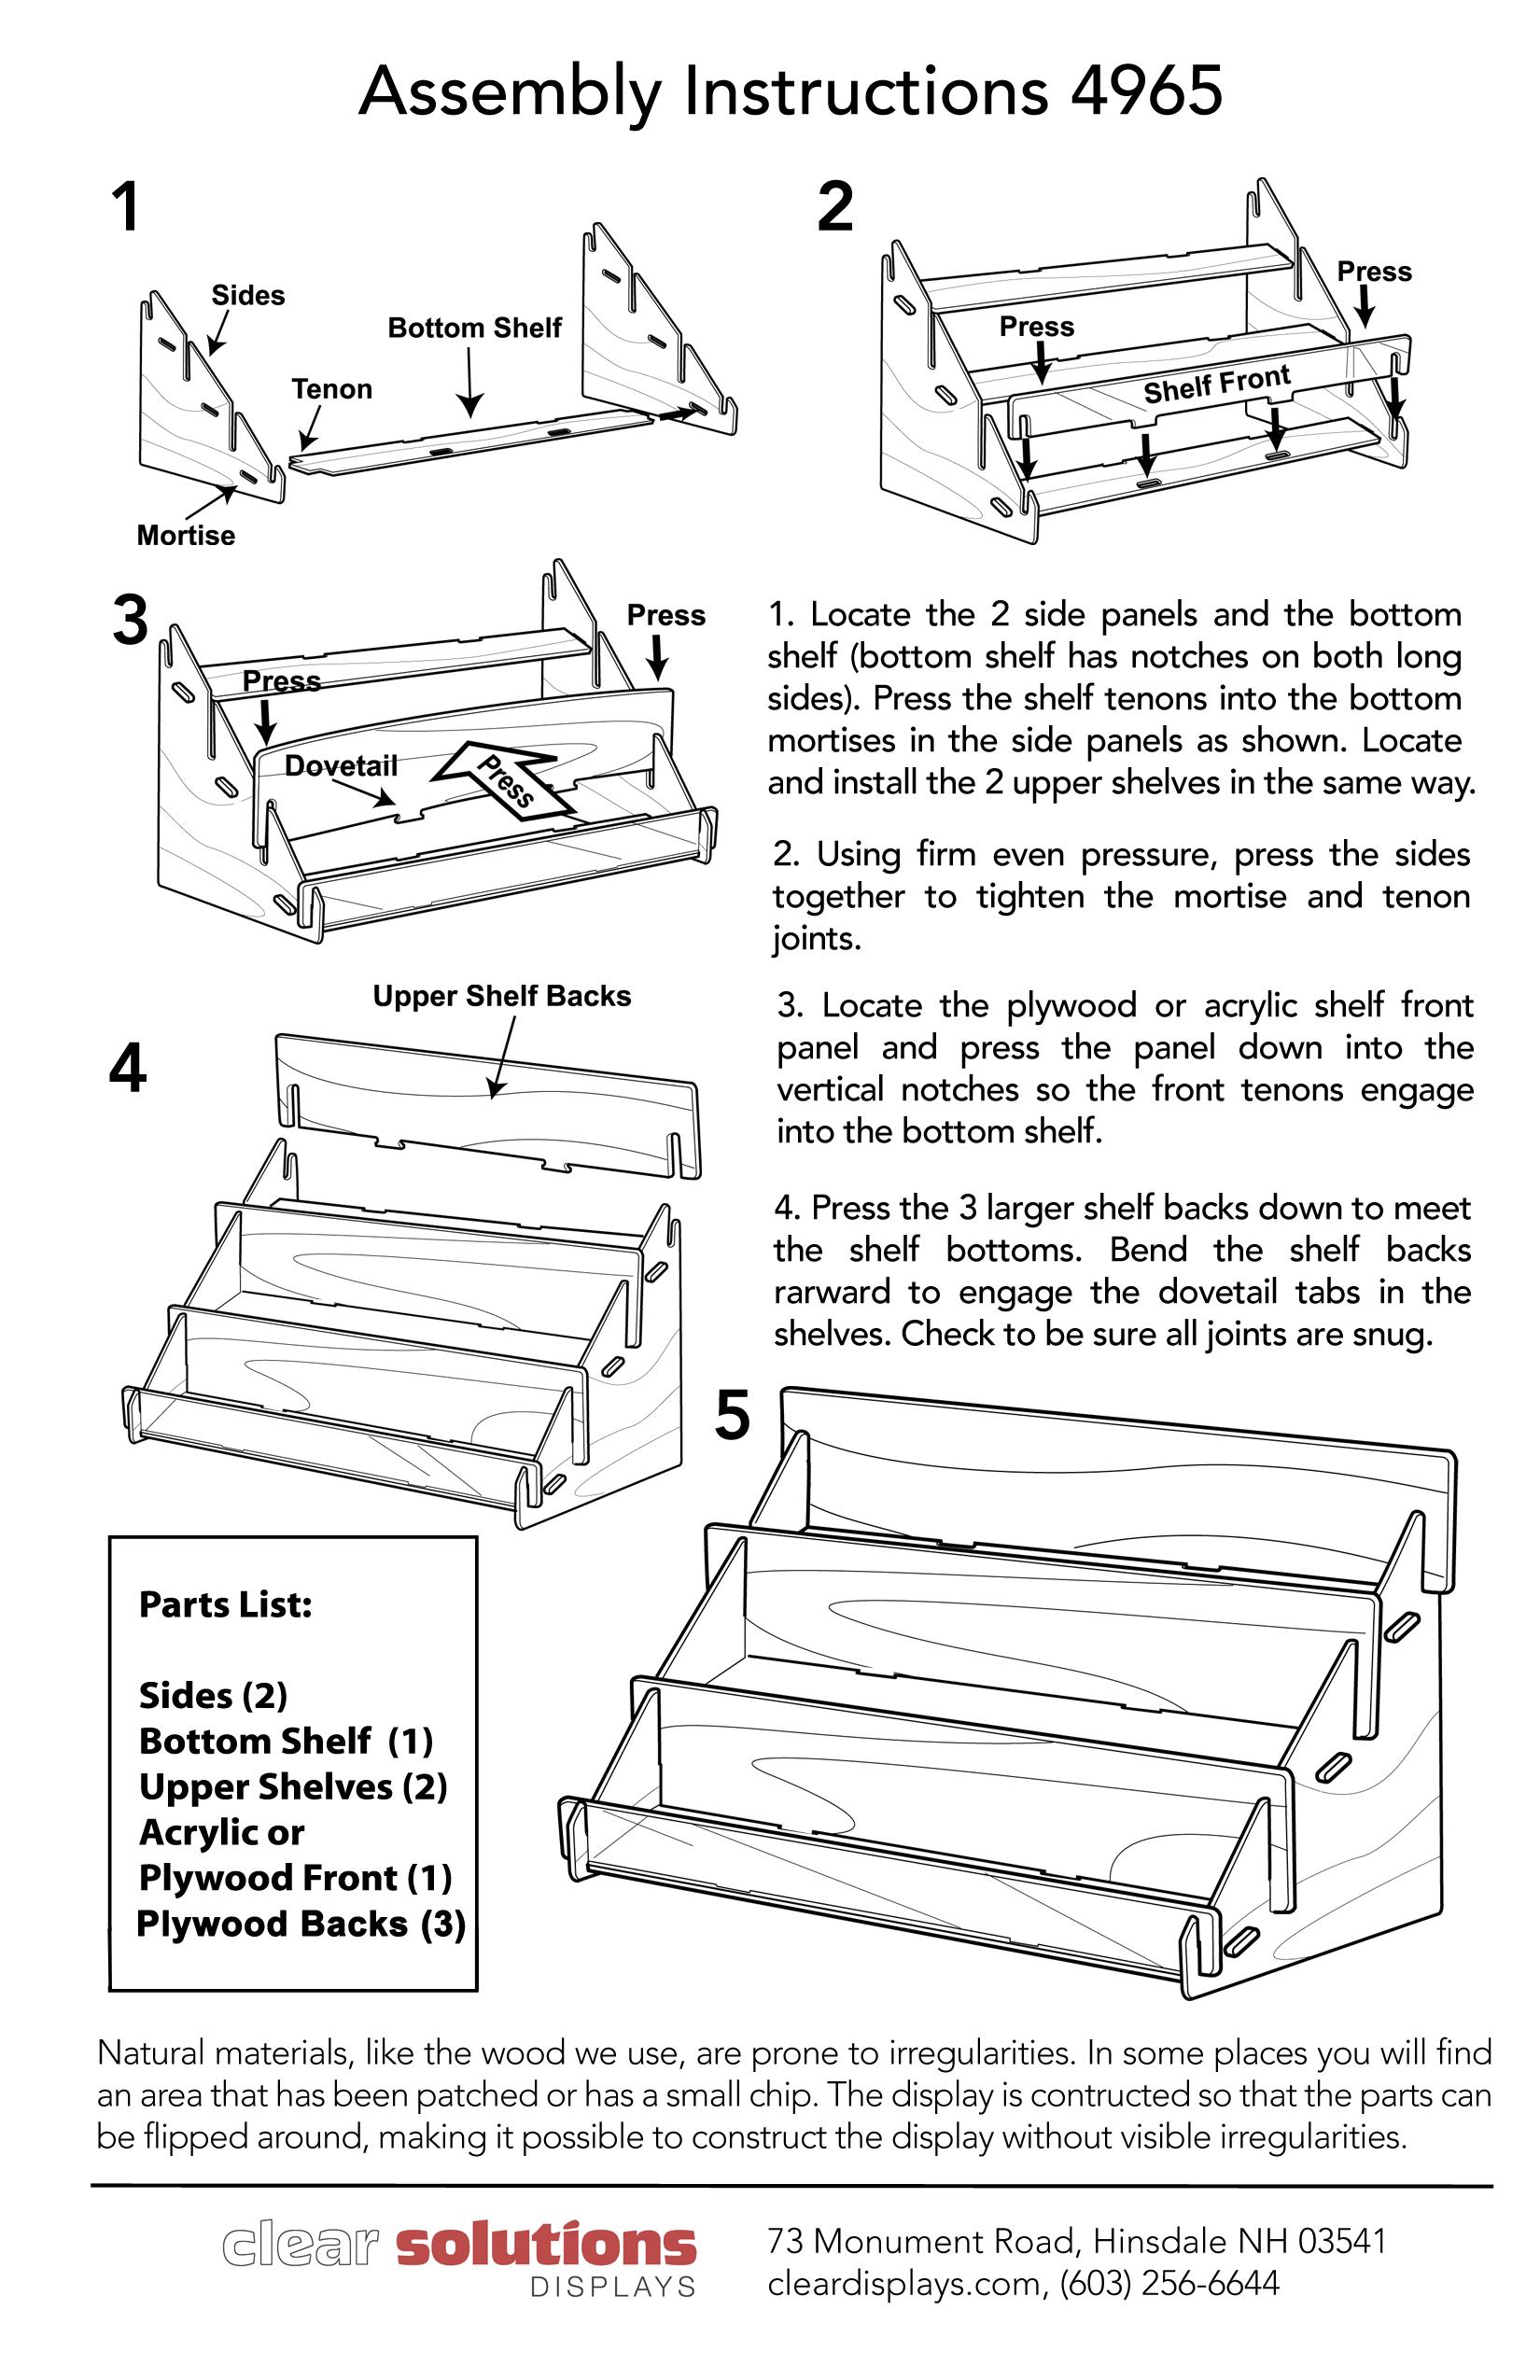 assembly-instructions-4965-for-web.jpg